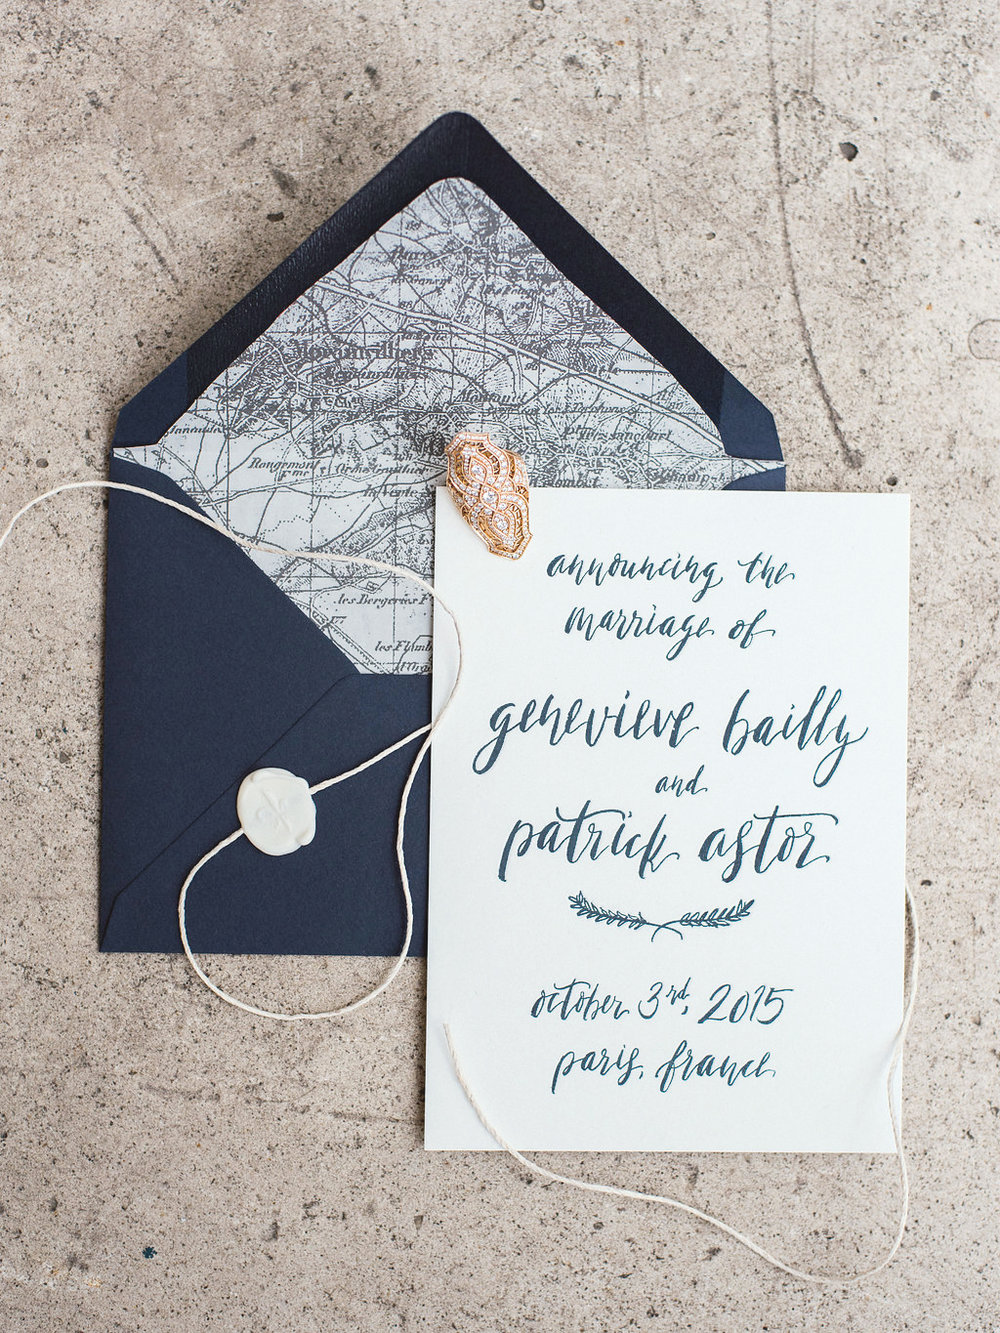 Handwritten marriage annoucement with custom envelope liner